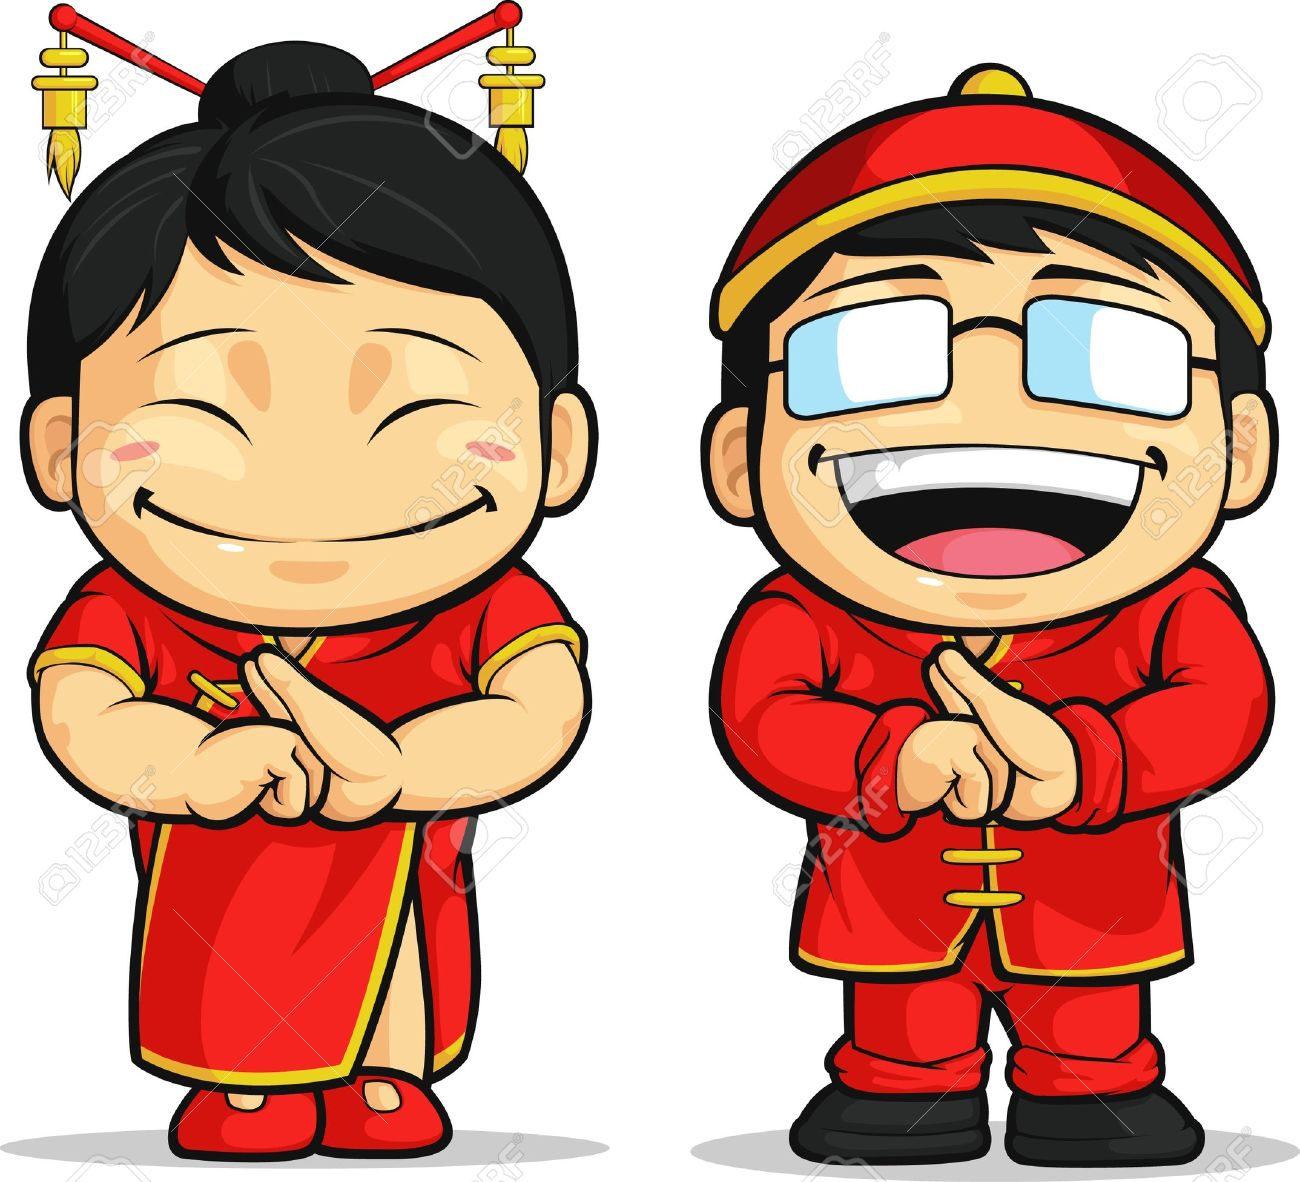 cartoon of chinese boy girl royalty free cliparts vectors and